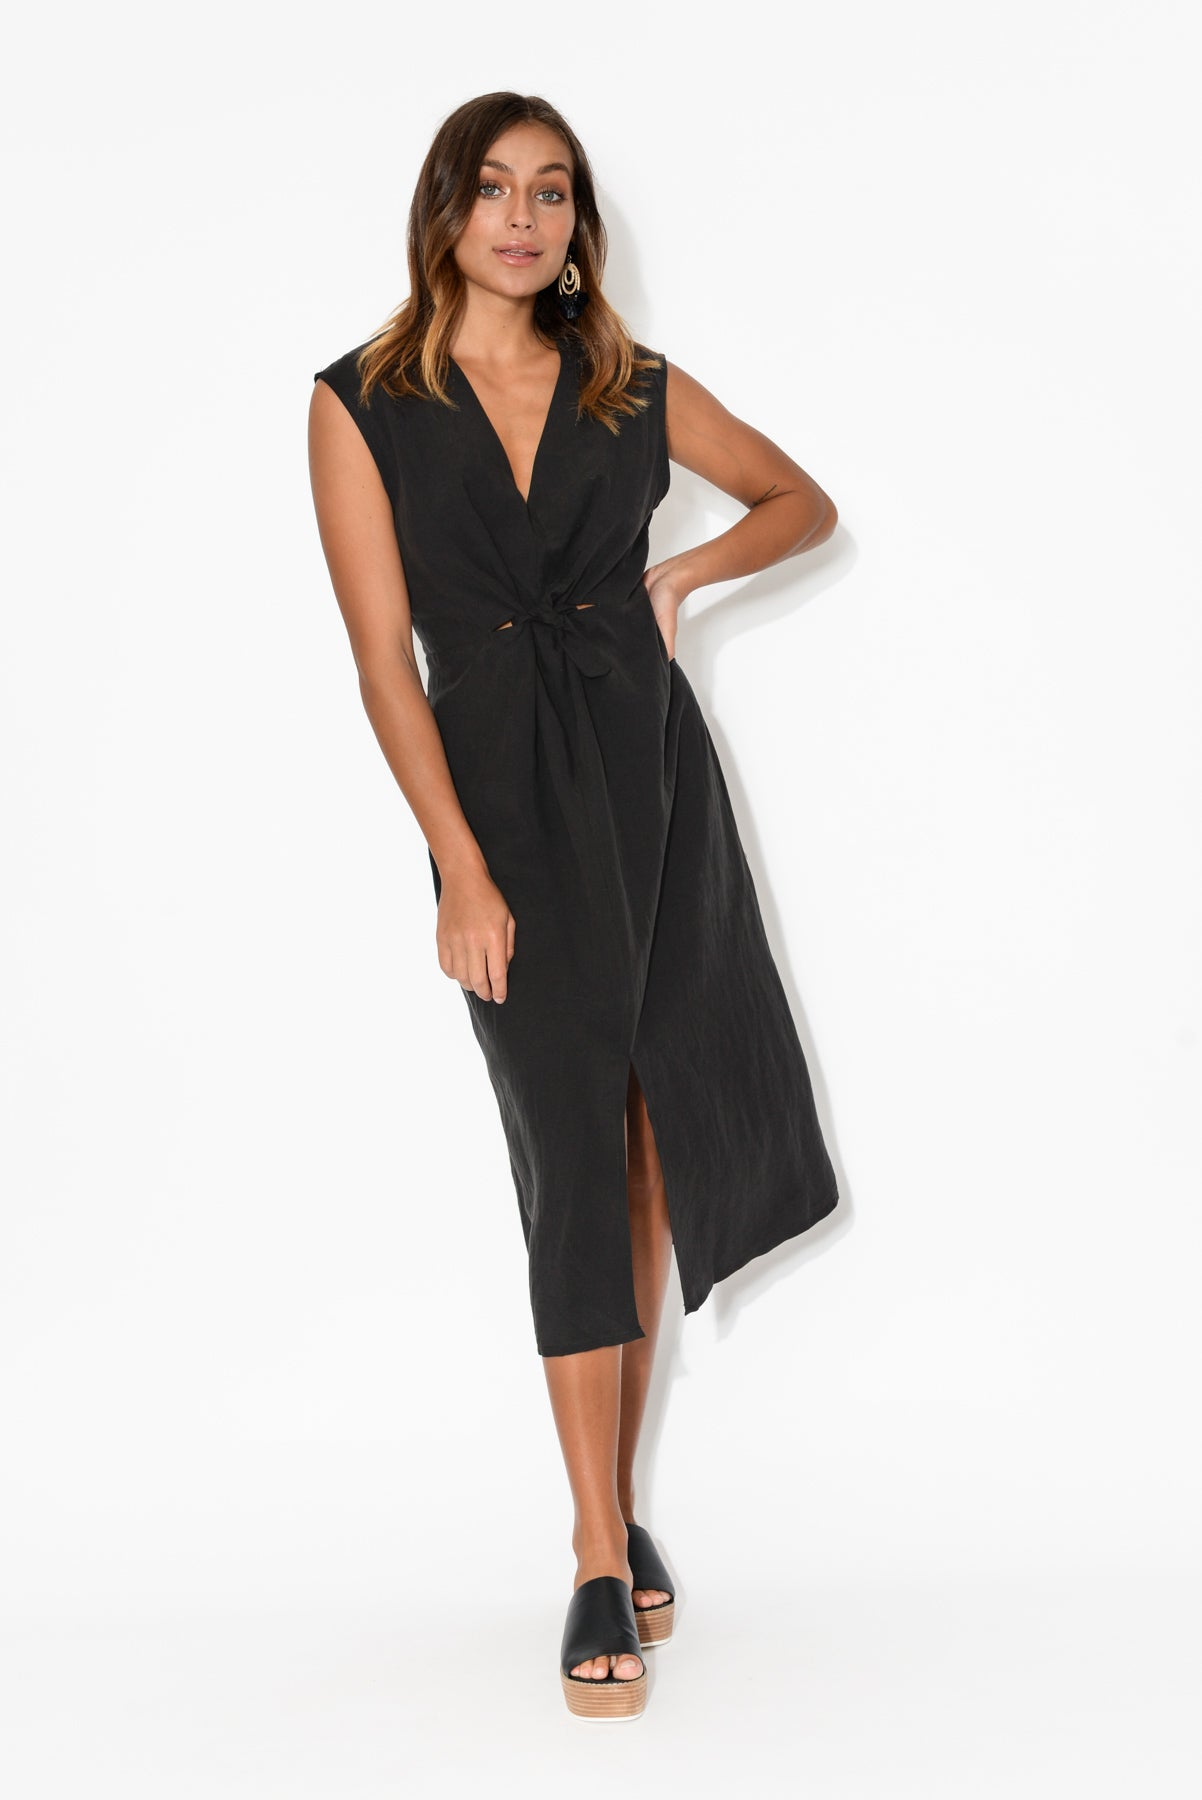 Cassie Black Tie Midi Dress